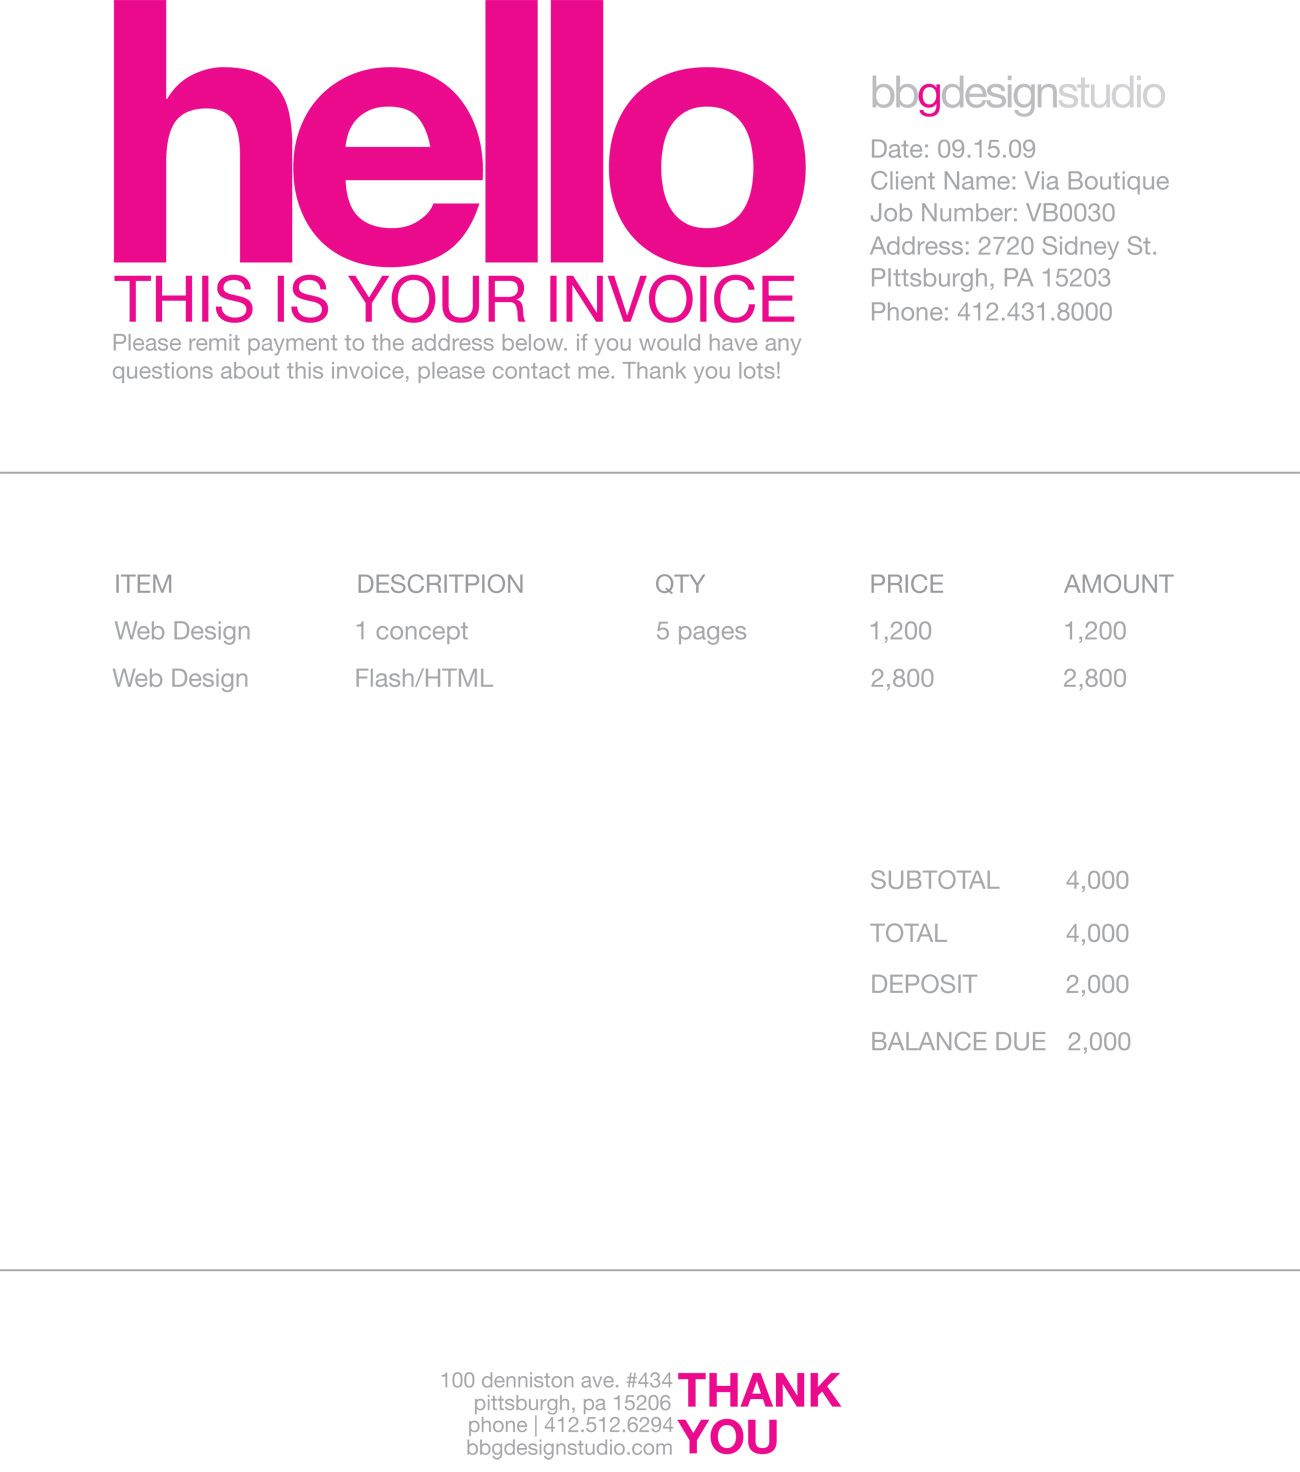 Coachoutletonlineplusus  Stunning  Images About Invoice Design On Pinterest With Likable Broward County Local Business Tax Receipt Besides Blank Receipt Book Furthermore Receipt For Payment Template With Cool Security Deposit Receipt Template Also Auto Sales Receipt In Addition Easy Receipts And Return Receipt In Gmail As Well As Olive Garden Receipt Additionally Free Printable Cash Receipt From Pinterestcom With Coachoutletonlineplusus  Likable  Images About Invoice Design On Pinterest With Cool Broward County Local Business Tax Receipt Besides Blank Receipt Book Furthermore Receipt For Payment Template And Stunning Security Deposit Receipt Template Also Auto Sales Receipt In Addition Easy Receipts From Pinterestcom